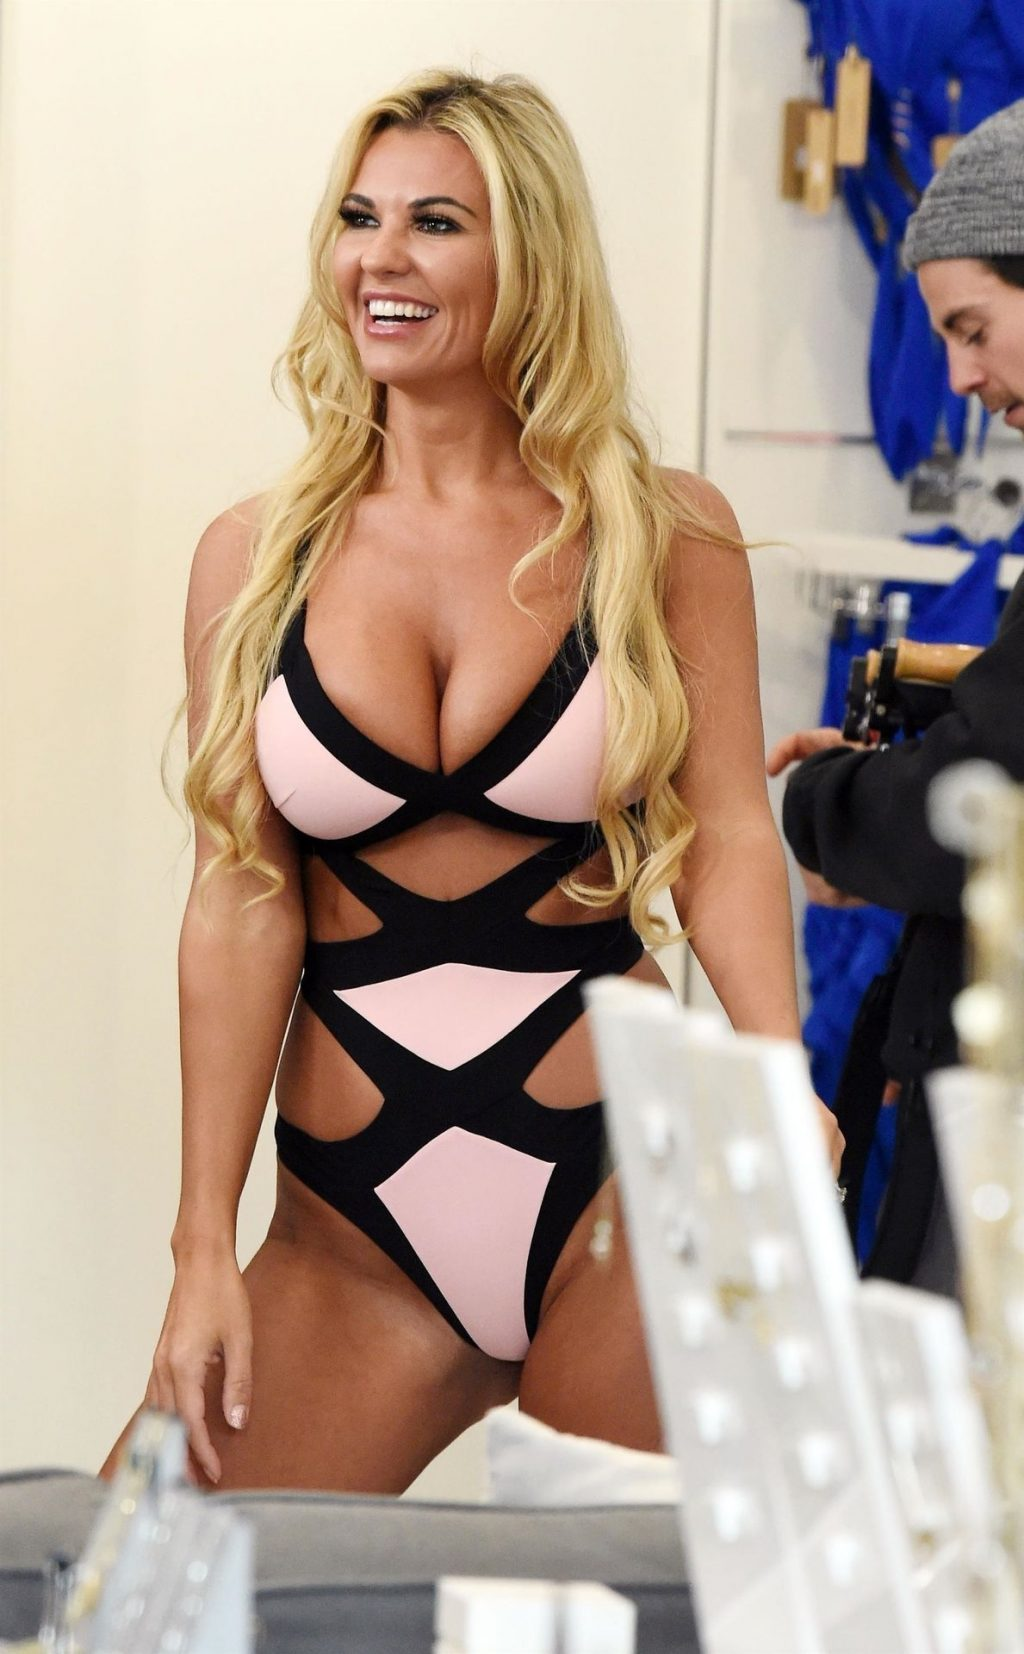 Christine McGuinness Looks Sensational as She Films Scenes For the Real Housewife of Cheshire (72 Photos)